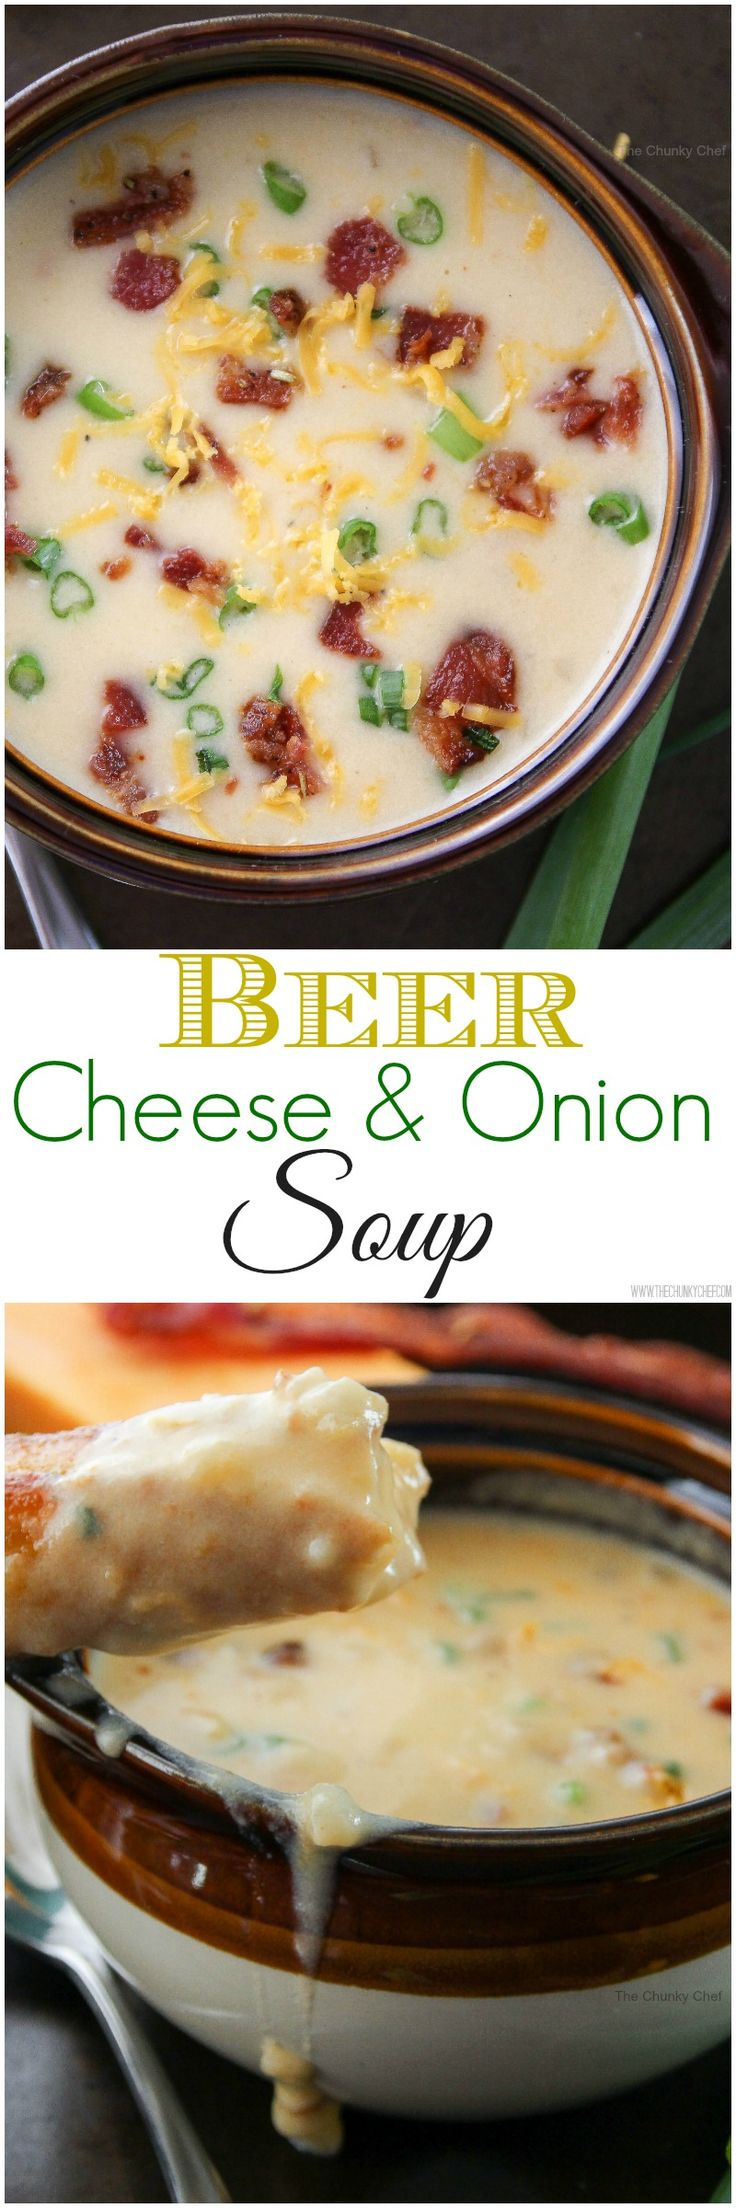 Beer Cheese and Onion Soup/Dip - You know that amazing beer cheese dip you get at pubs? Now you can make that at home, with the addition of flavorful caramelized onions!